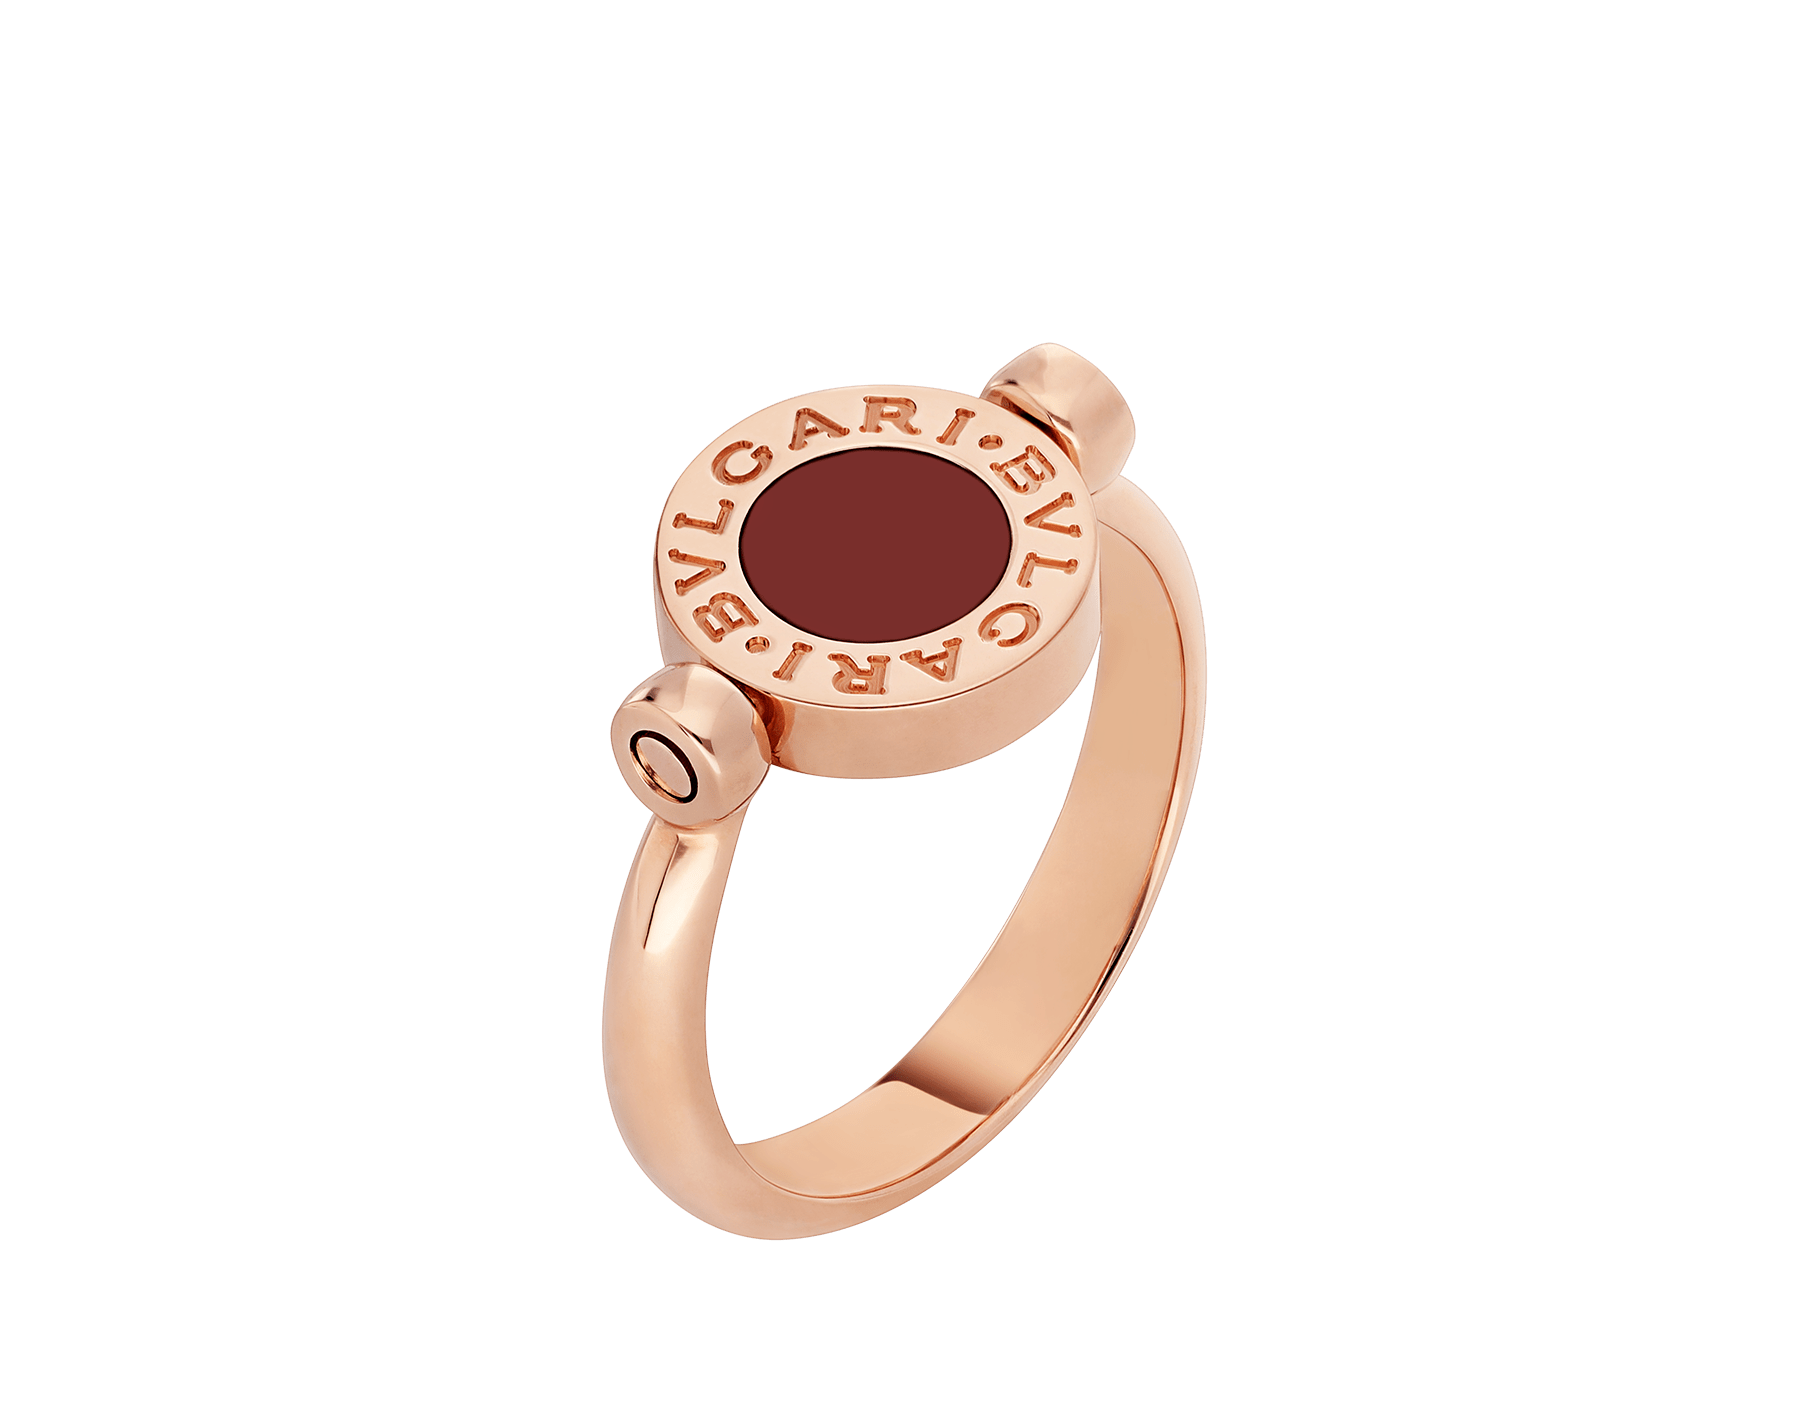 BVLGARI BVLGARI 18 kt rose gold flip ring set with mother-of-pearl and carnelian elements AN858197 image 1